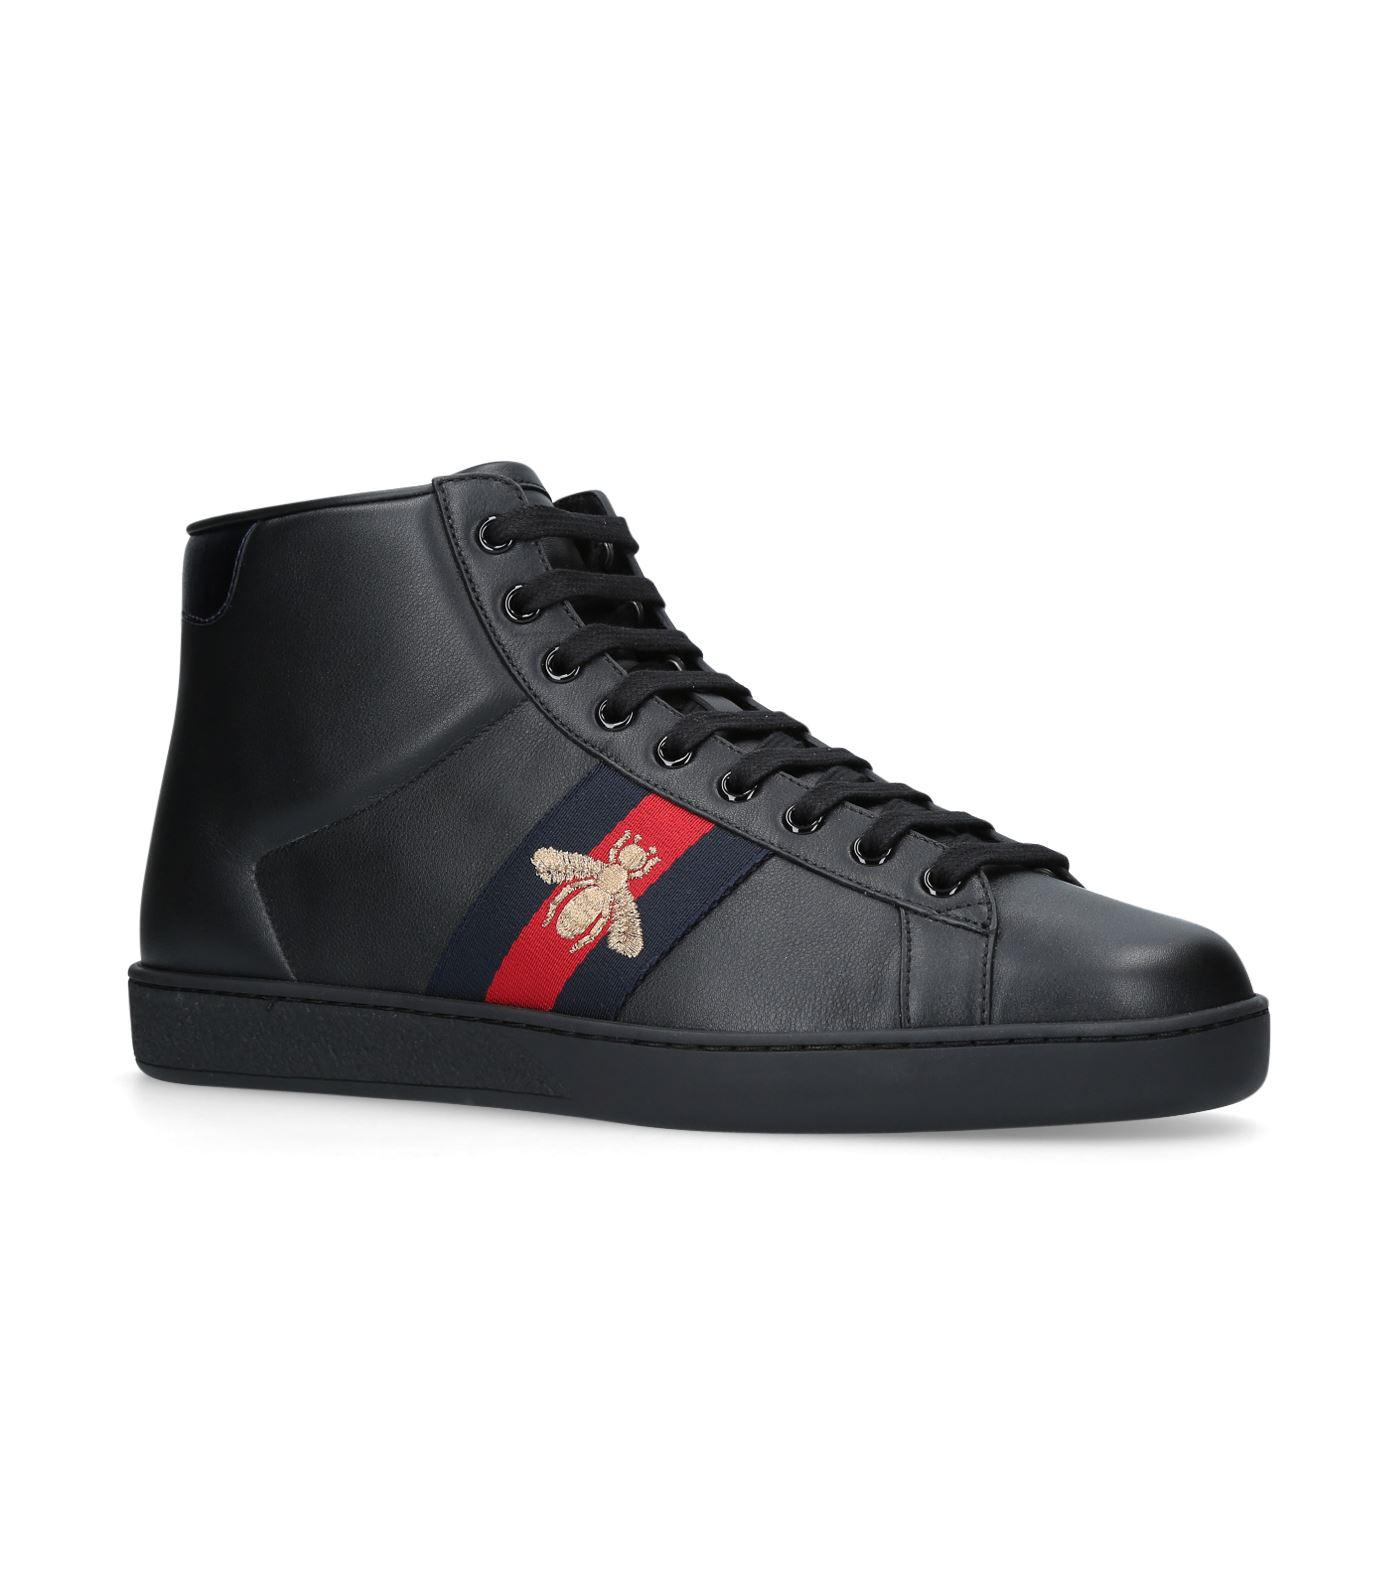 Ace Bee Embroidered High Top Sneakers